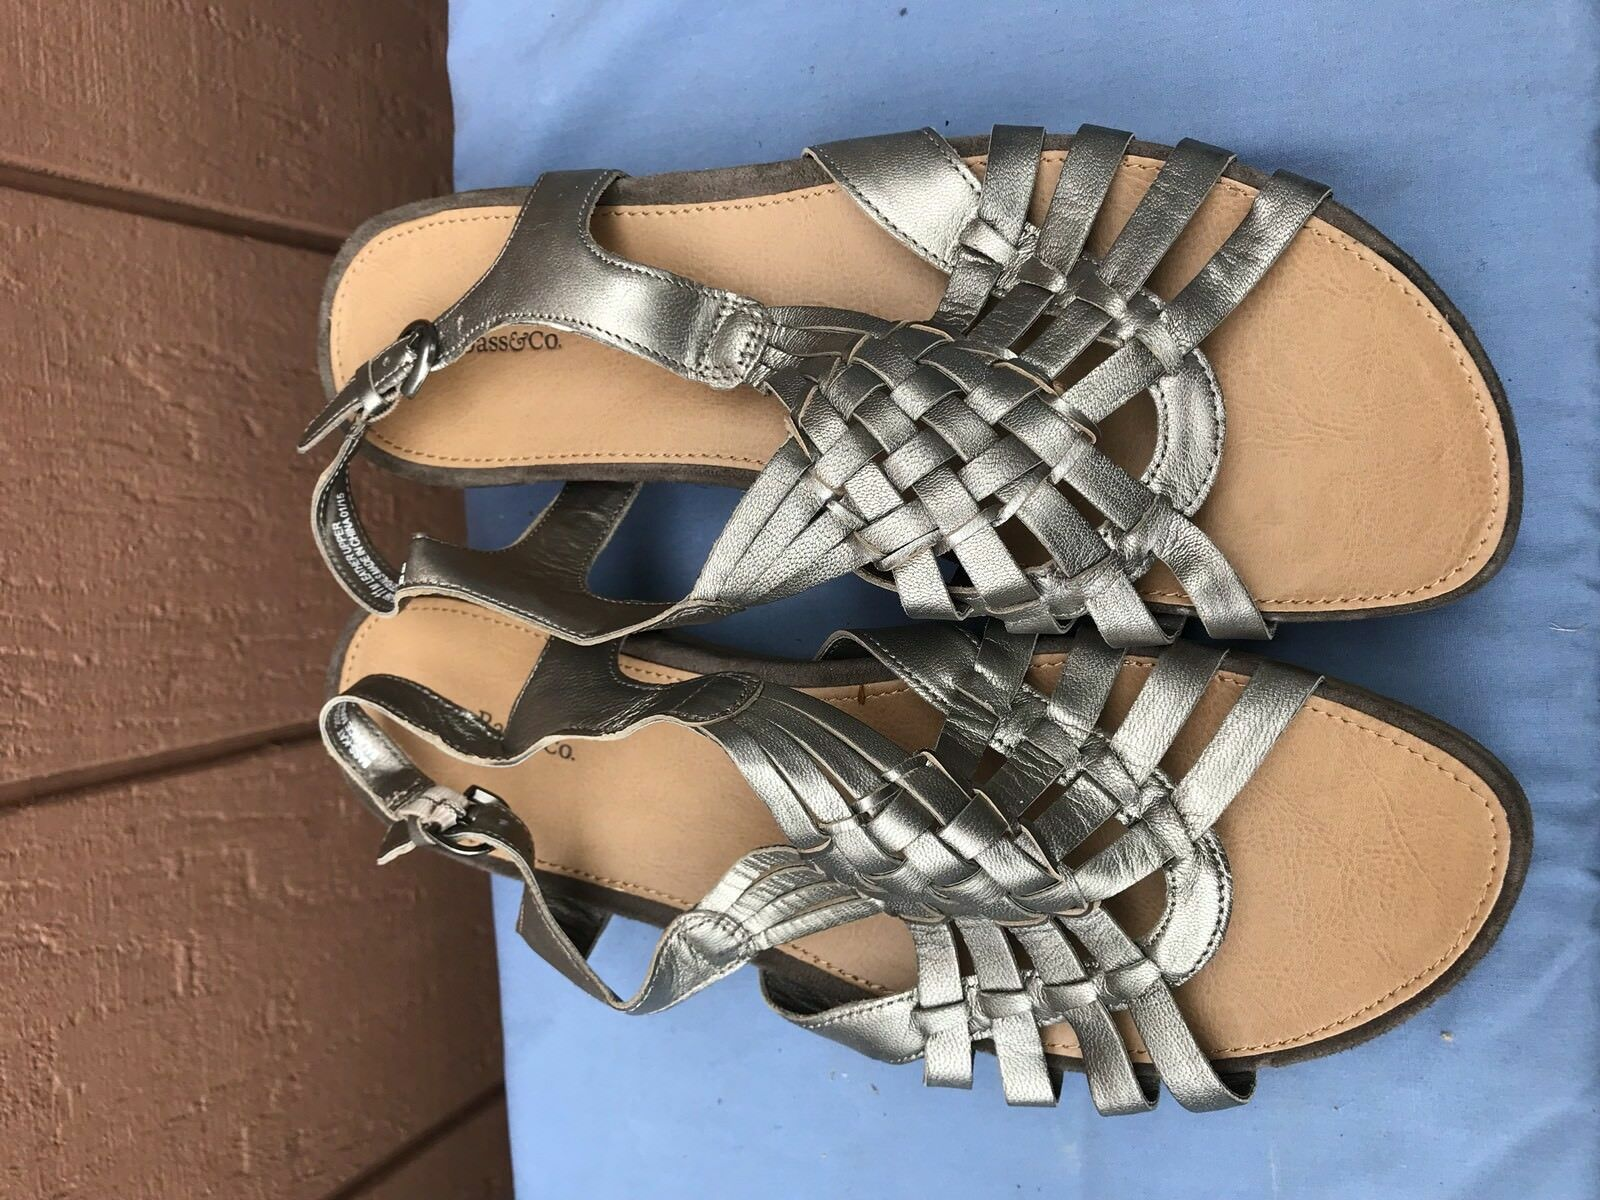 G.H. G.H. G.H. Bass & Co Kat US 11 Metallic Silver Woven Leather Ankle Strap Sandals A4 6a6398